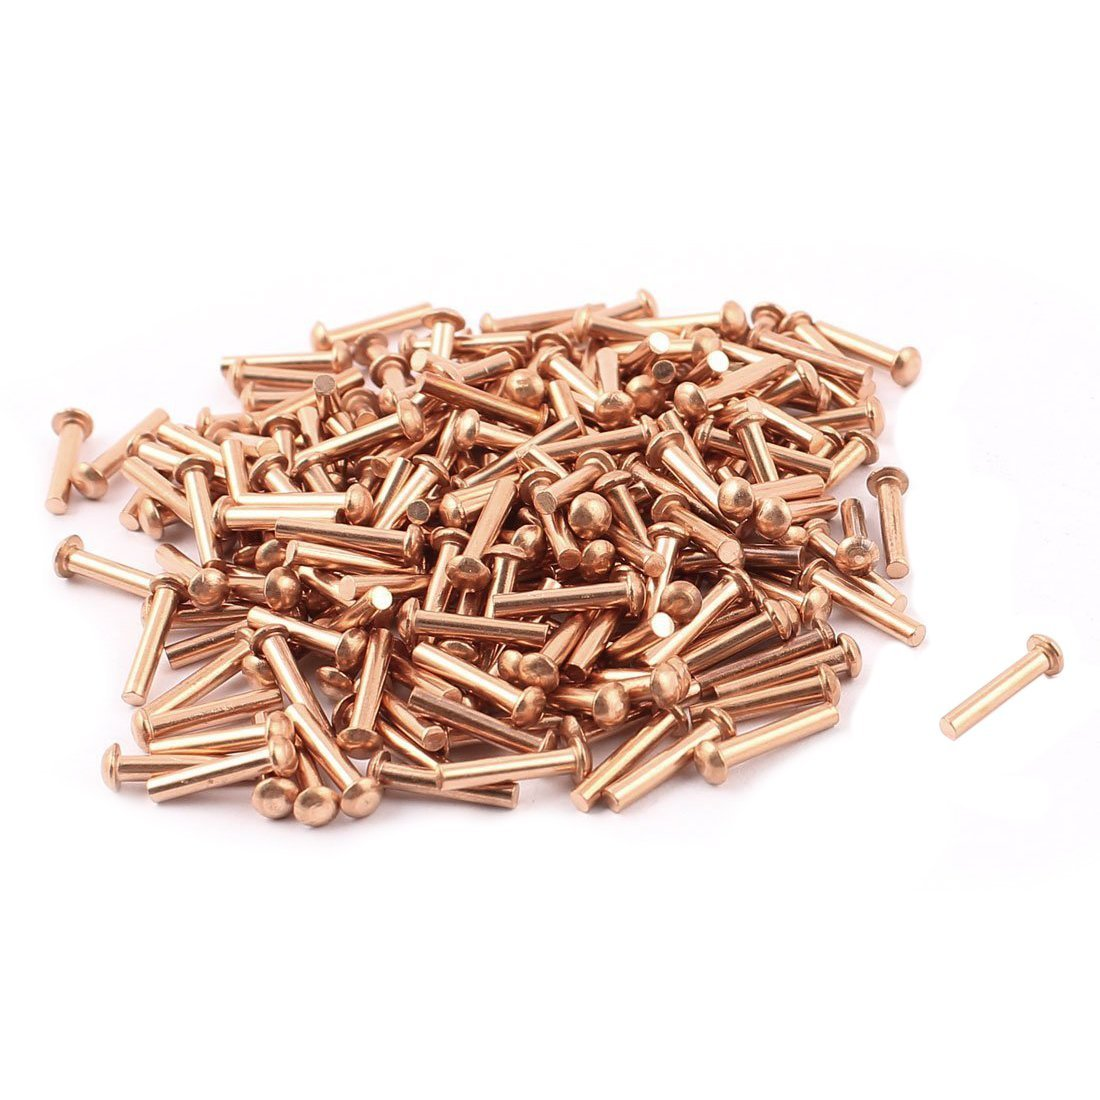 SODIAL(R) 100 Pcs 5/64inch x 25/64inch Round Head Copper Solid Rivets Fasteners